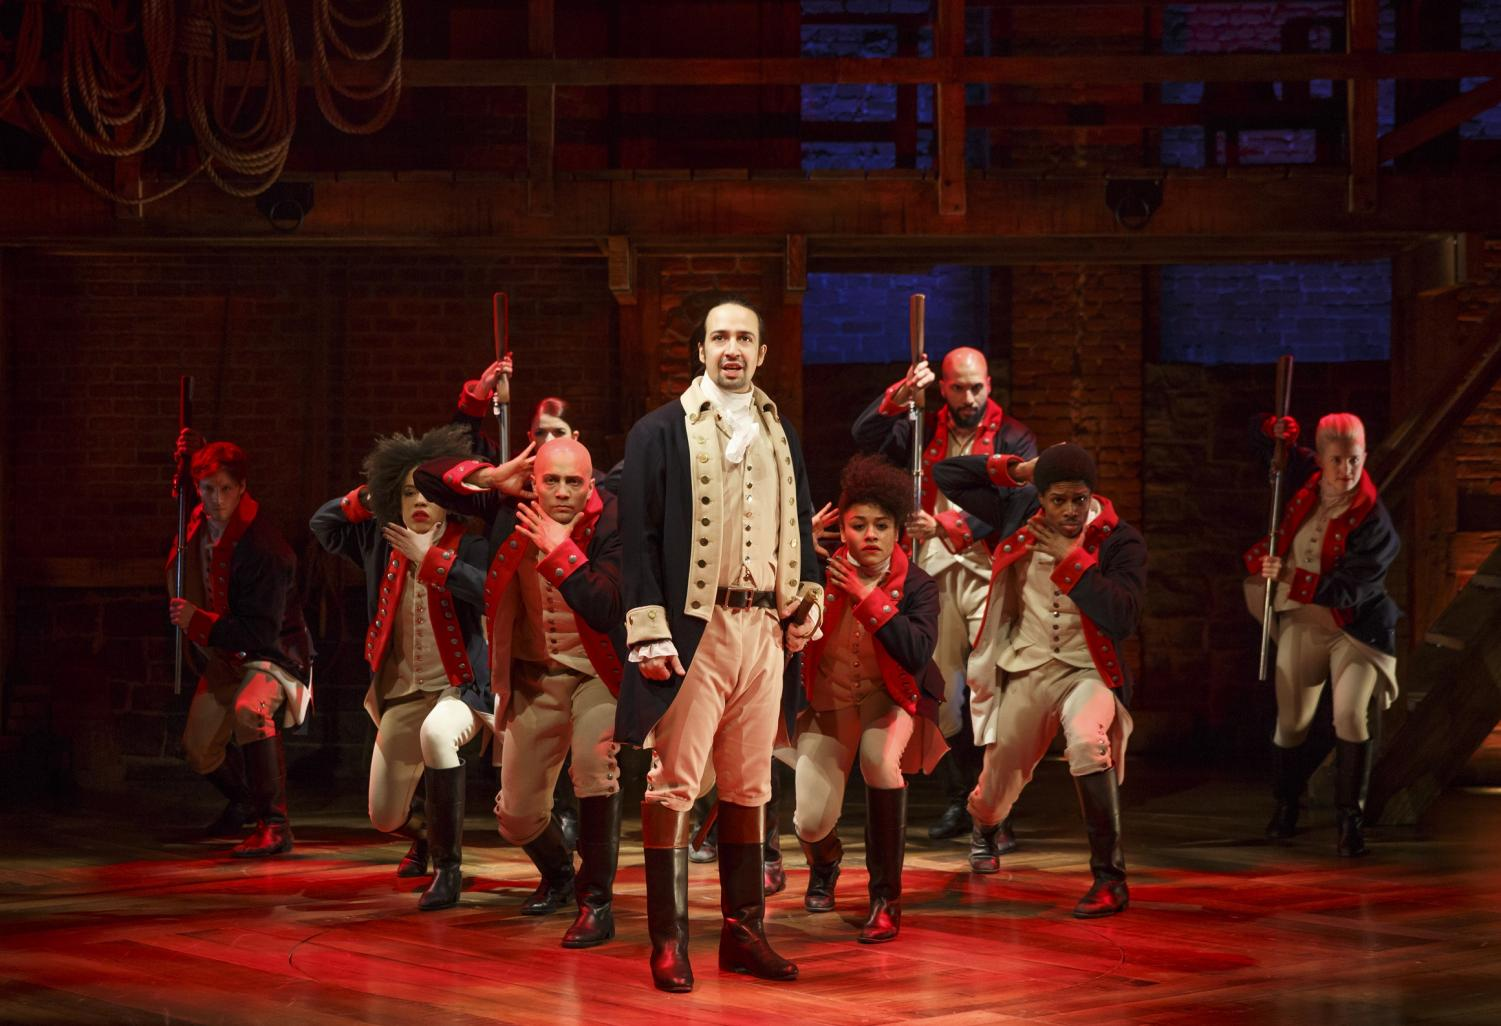 The 'Hamilton' film will feature the original Broadway cast, with creator, Lin-Manuel Miranda, playing the role of Alexander Hamilton.